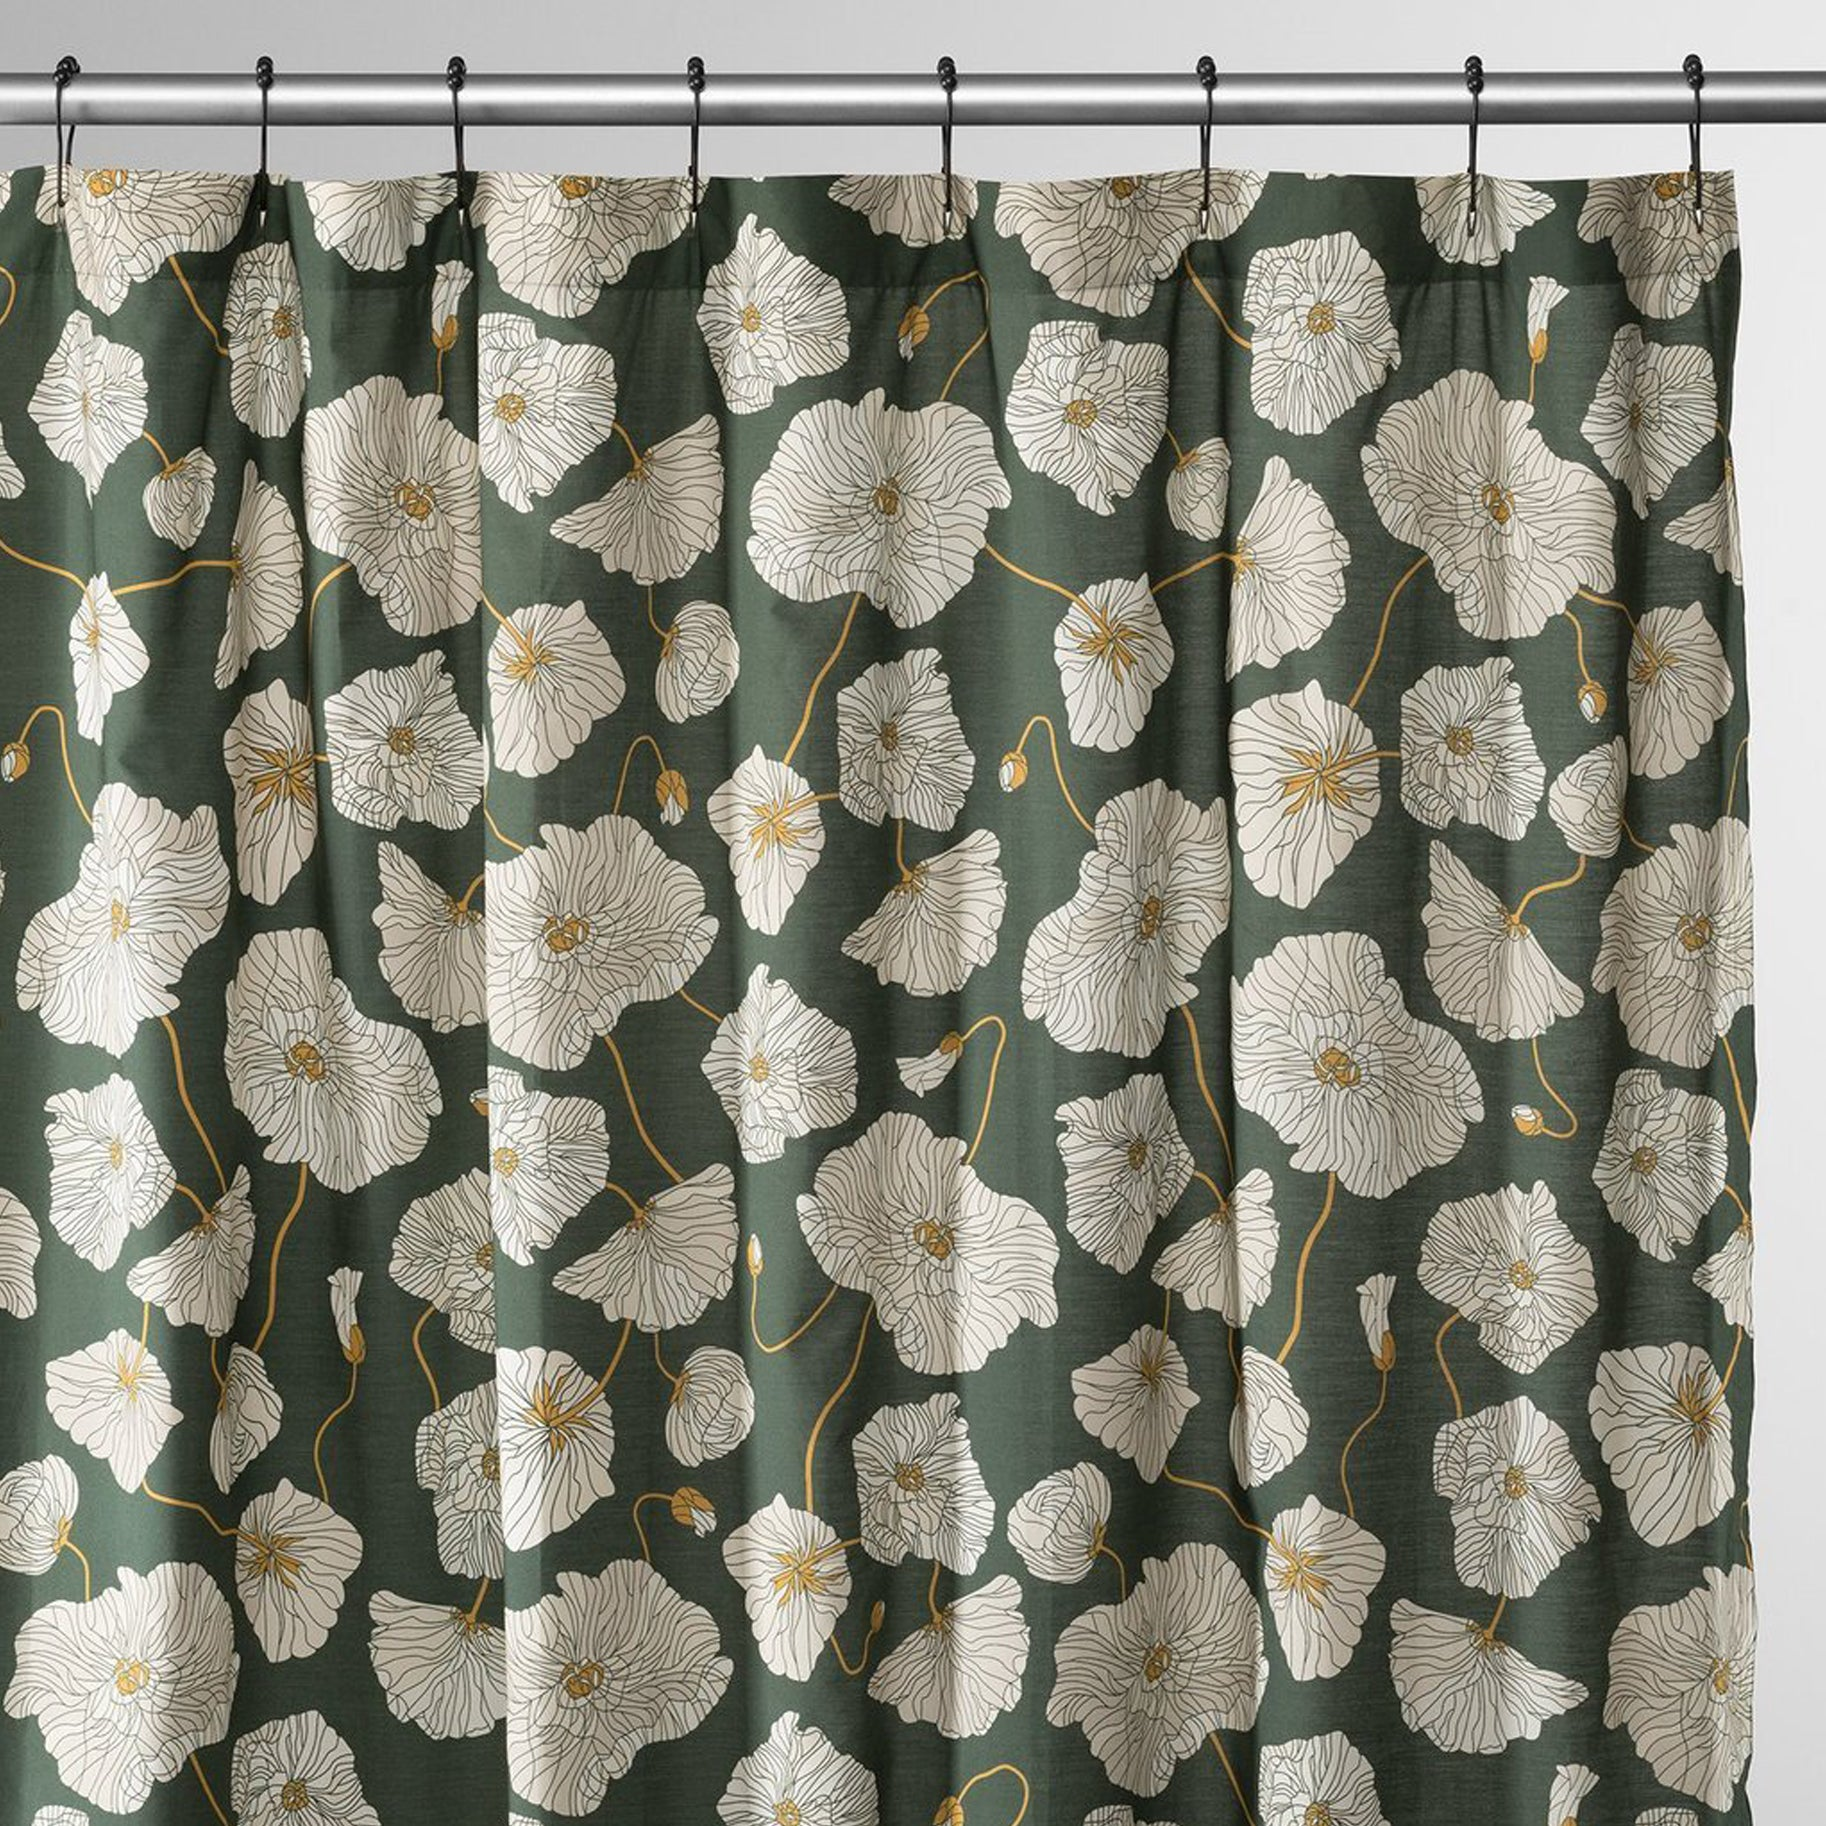 The-Best-Shower-Curtains-Option-Schoolhouse-Blooming-Field-Shower-Curtain